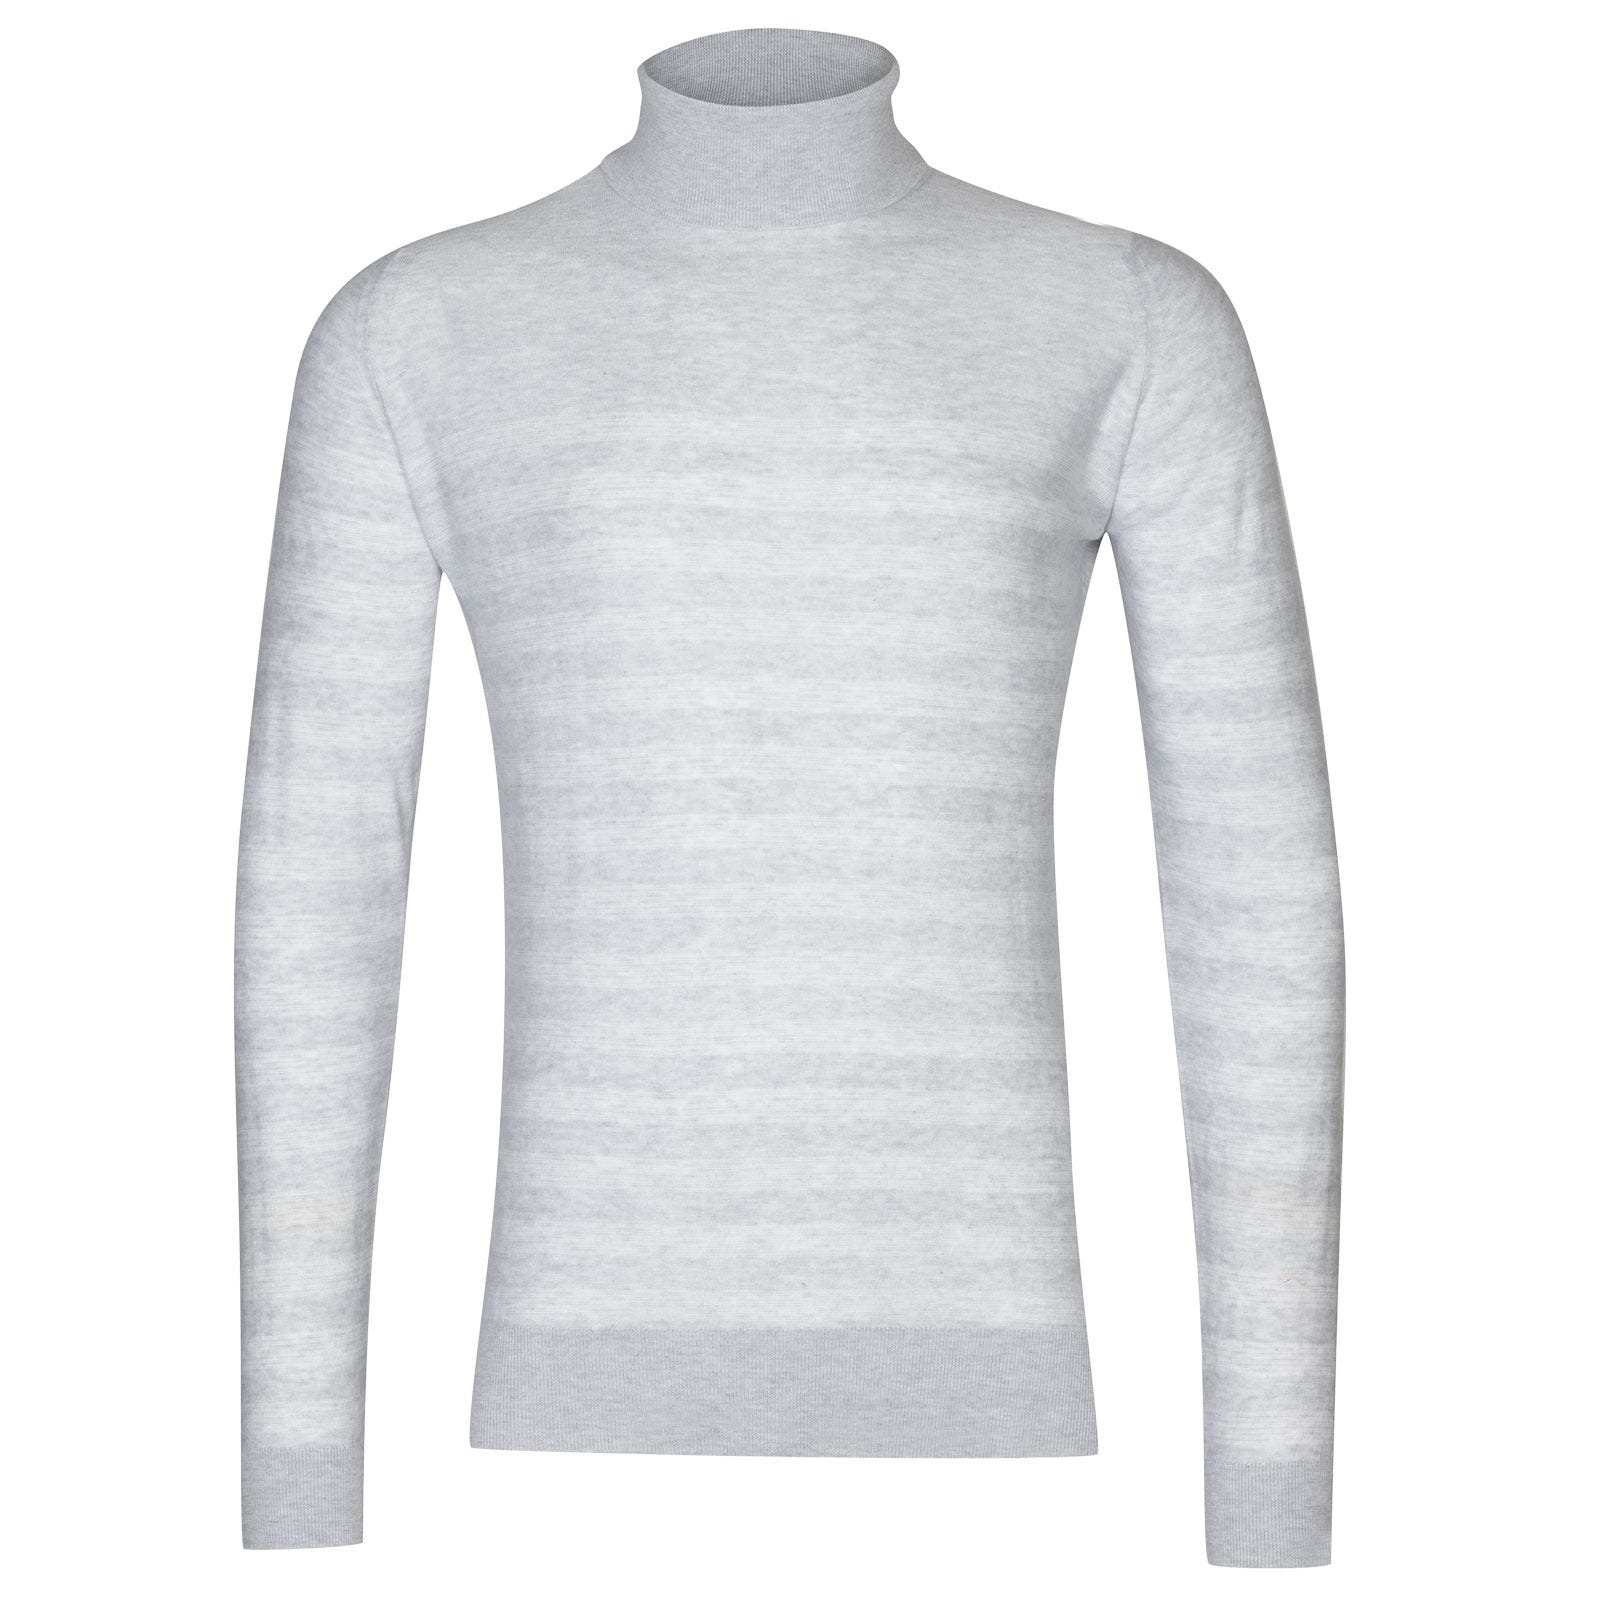 John Smedley tenby Sea Island Cotton Sweater in Feather Grey/White-XXL